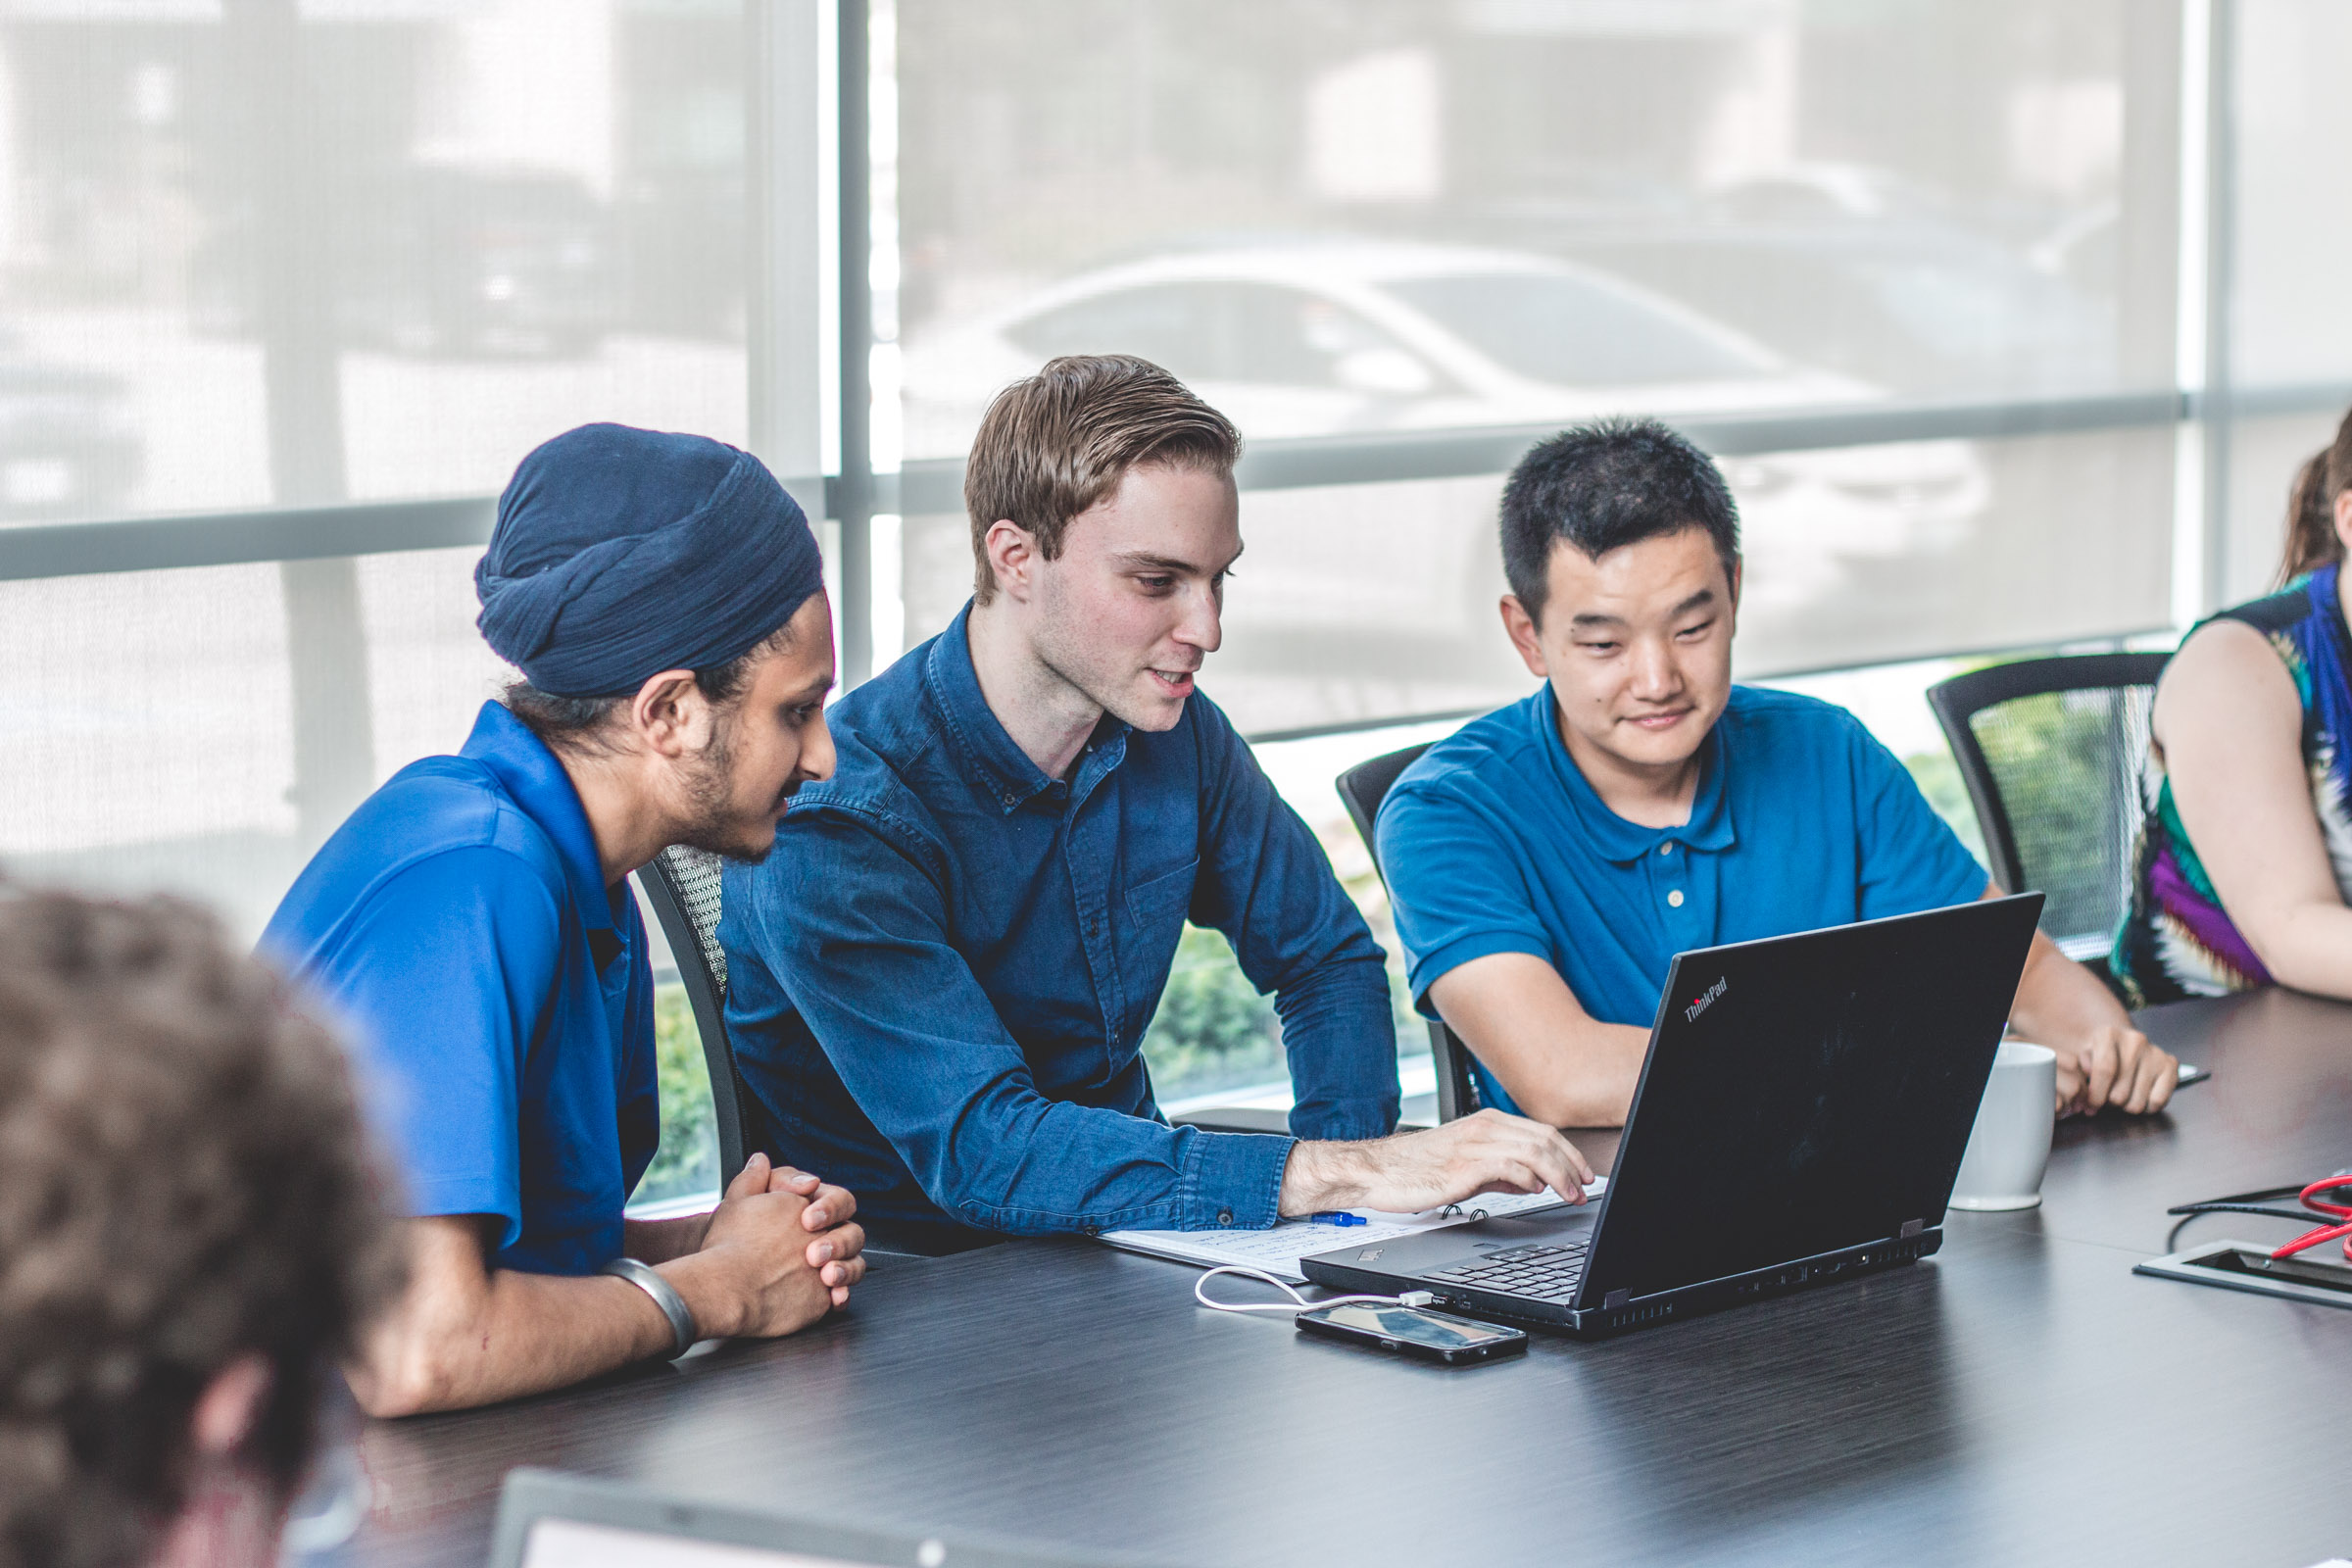 Image of three men sitting beside each other, all wearing blue collard shirts of varying tones, looking at a sinhgle laptop screen with the central person using the laptop and talking/explaining something to the other two